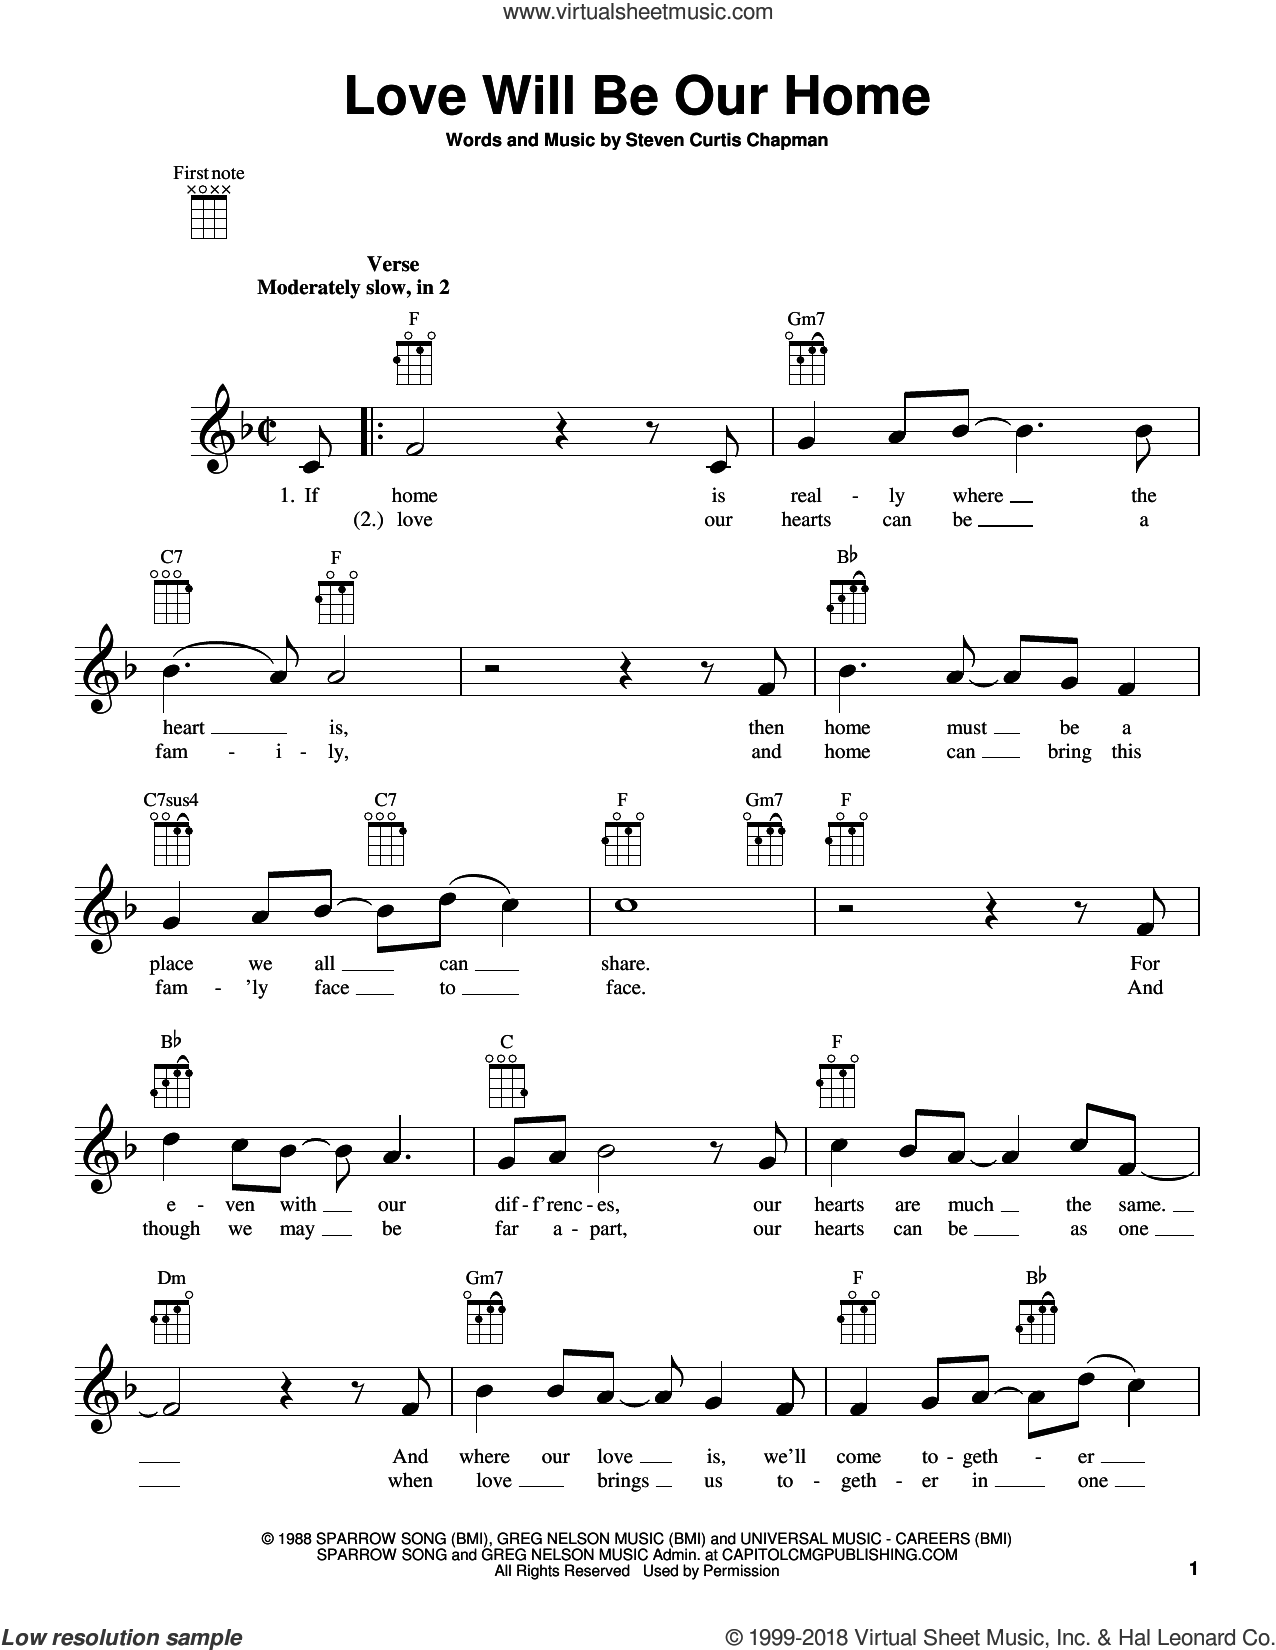 Love Will Be Our Home sheet music for ukulele by Steven Curtis Chapman and Sandi Patty, intermediate skill level